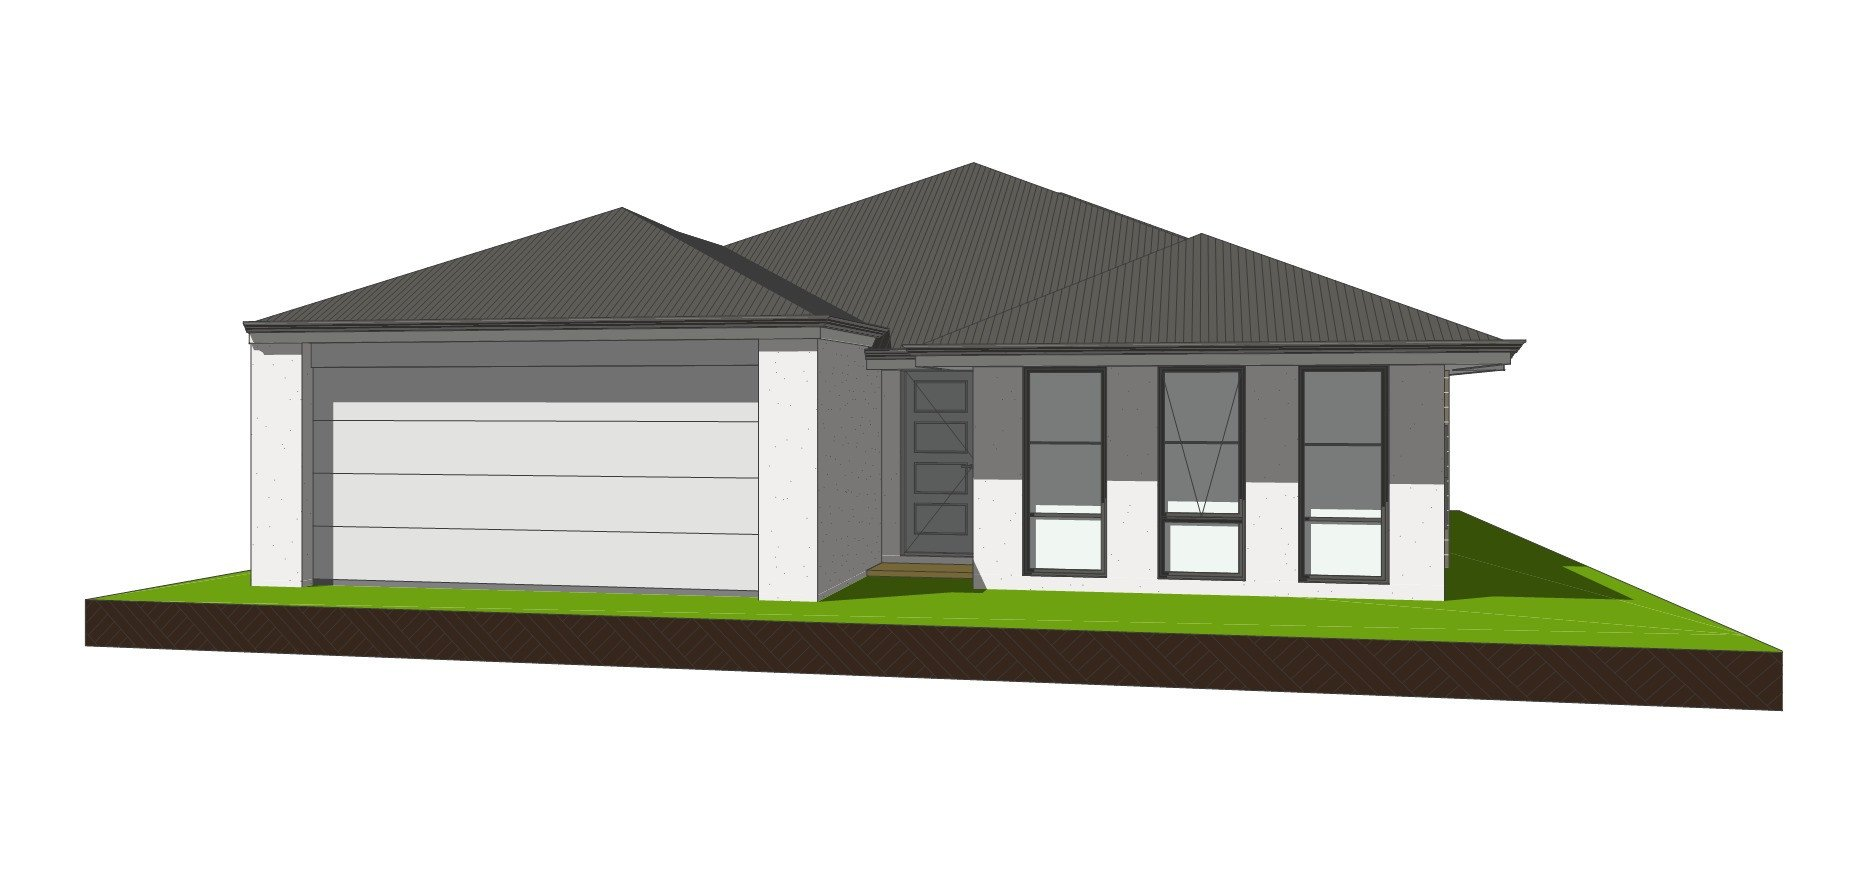 Canning-front-elevation